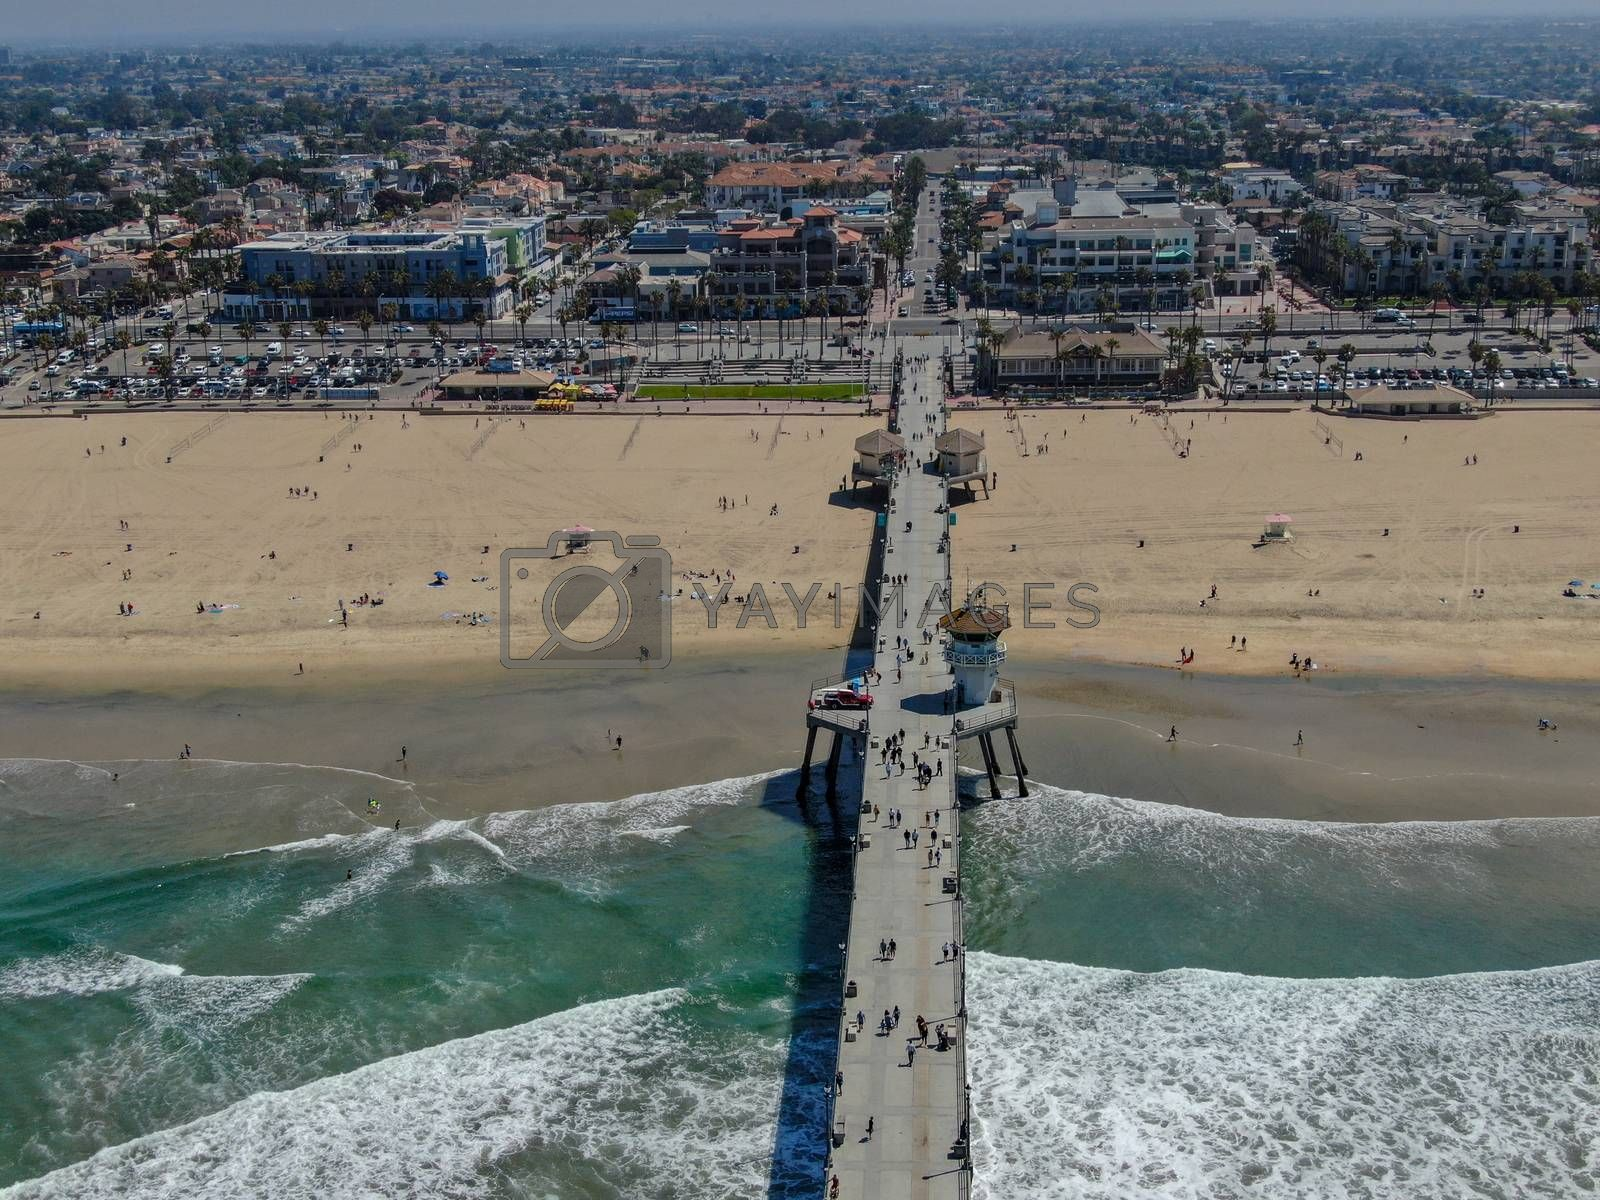 Aerial view of Huntington Pier, beach and coastline during sunny summer day, Southeast of Los Angeles. California. destination for surfer and tourist.